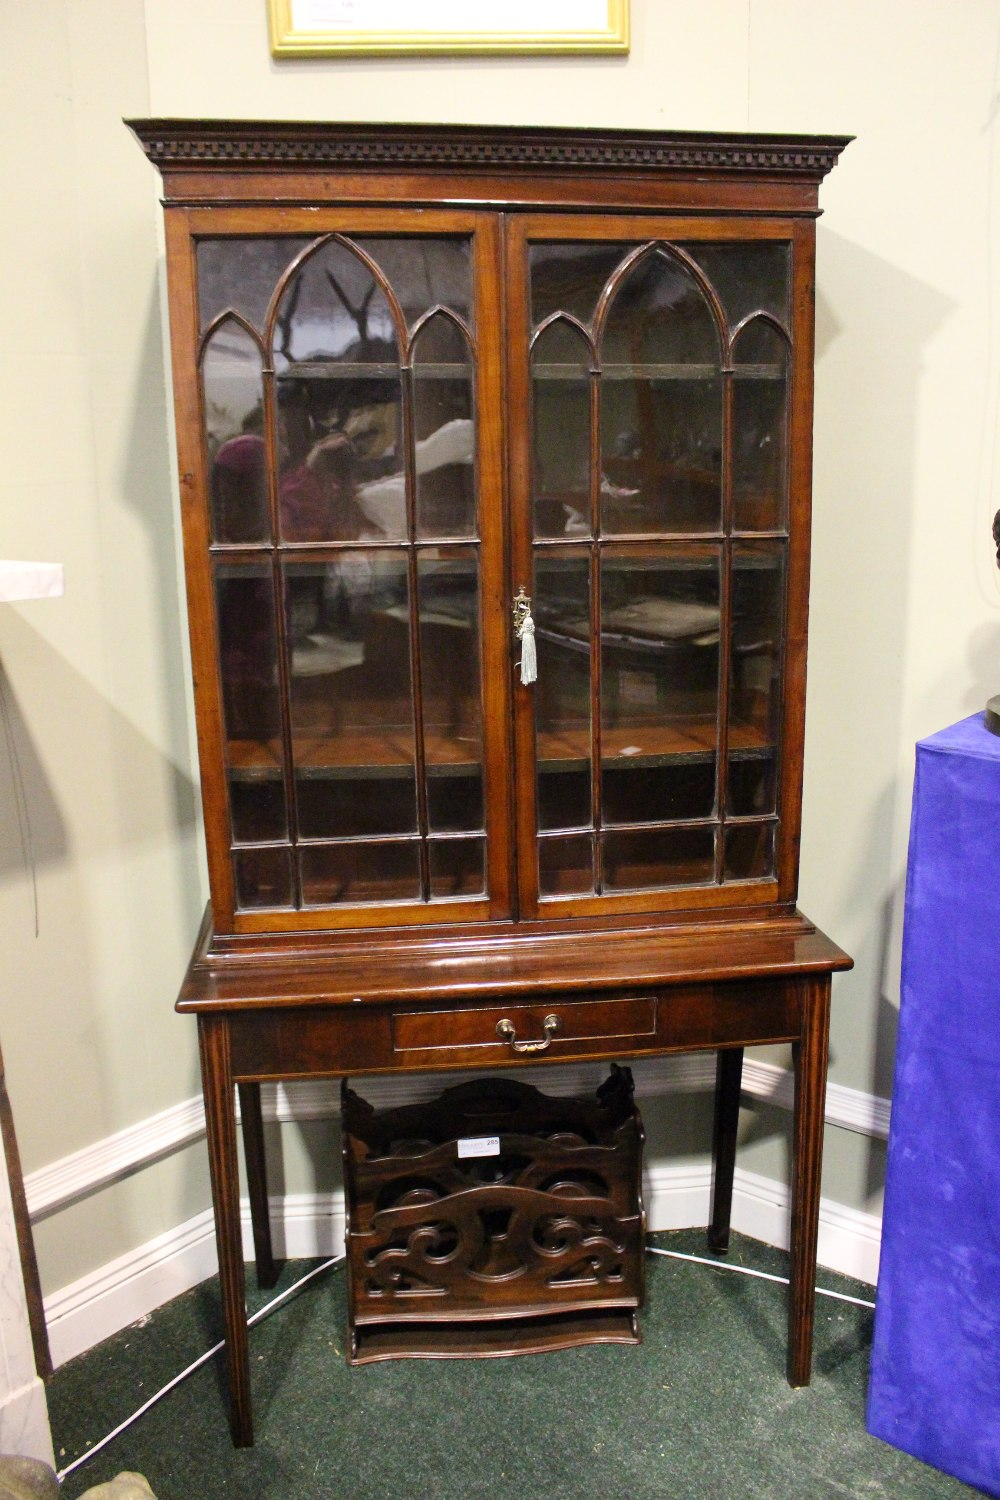 Lot 8 - A VERY FINE GEORGIAN 2 DOOR DISPLAY CABINET, with astragal glazed doors, shelved interior, raised on